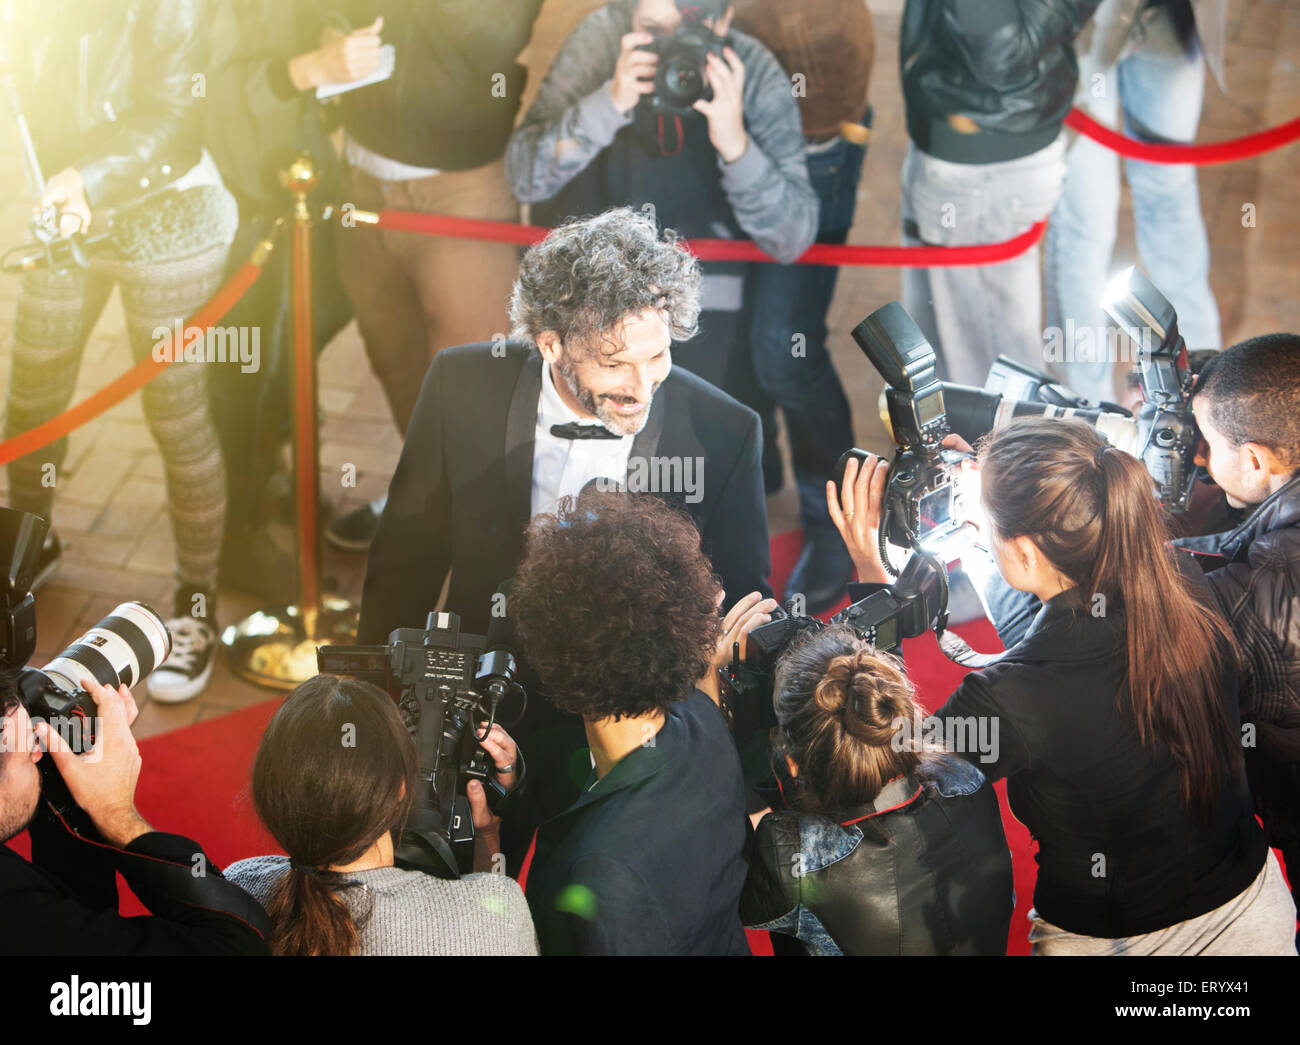 Paparazzi Roter Teppich Red Carpet Event Stockfotos And Red Carpet Event Bilder Alamy